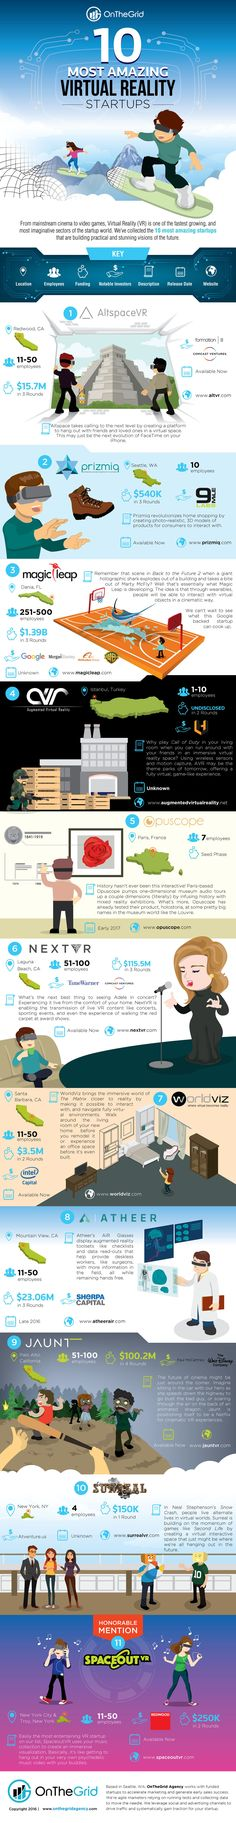 Awesome Virtual Reality Startups - Business Infographic. Topic: tech company, augmented reality, ar, oculus, magic leap, vr games.